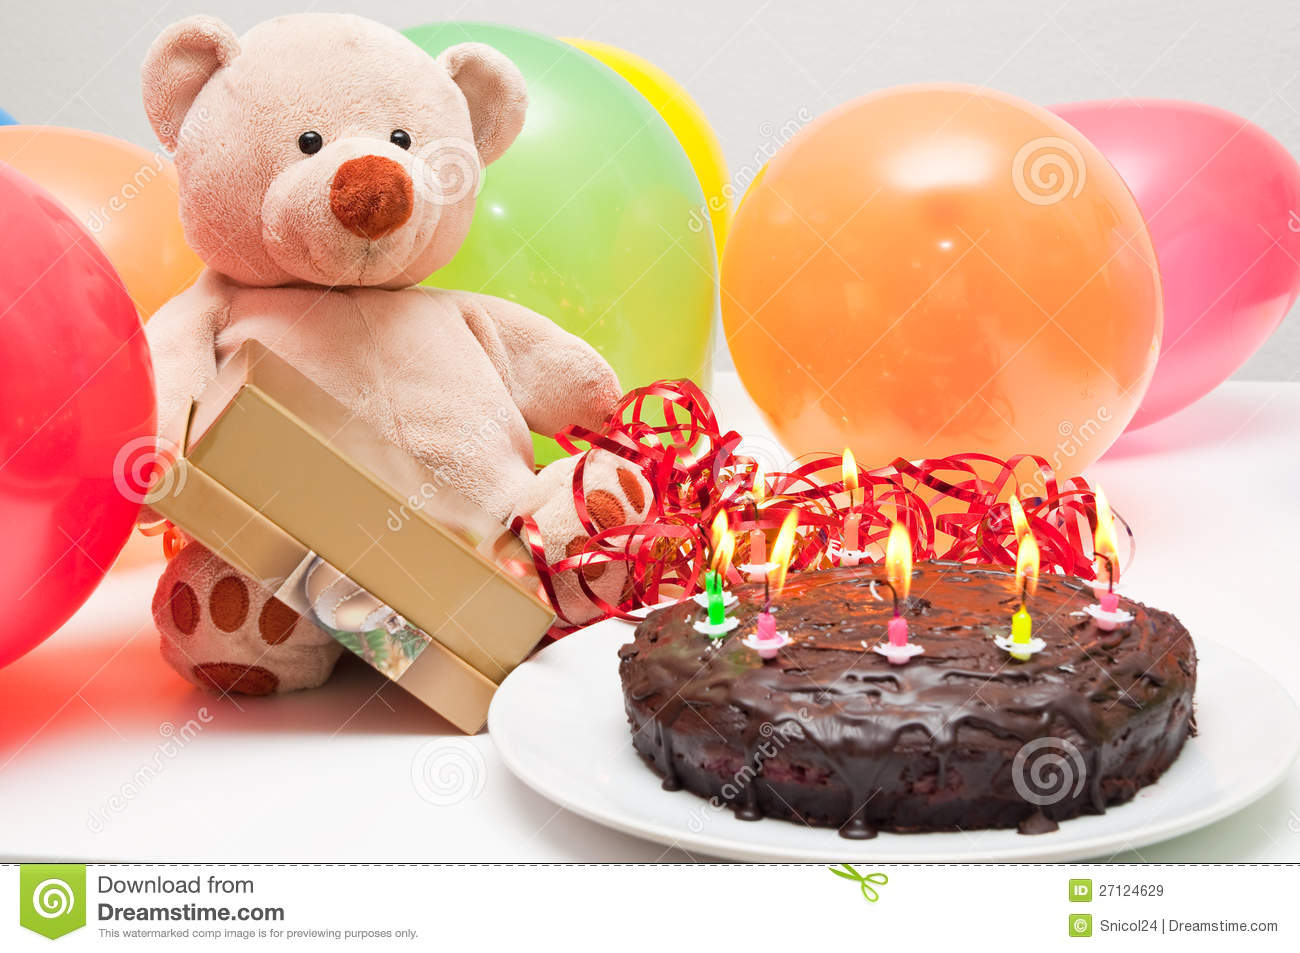 Birthday Cake And Teddy Bear Download Preview